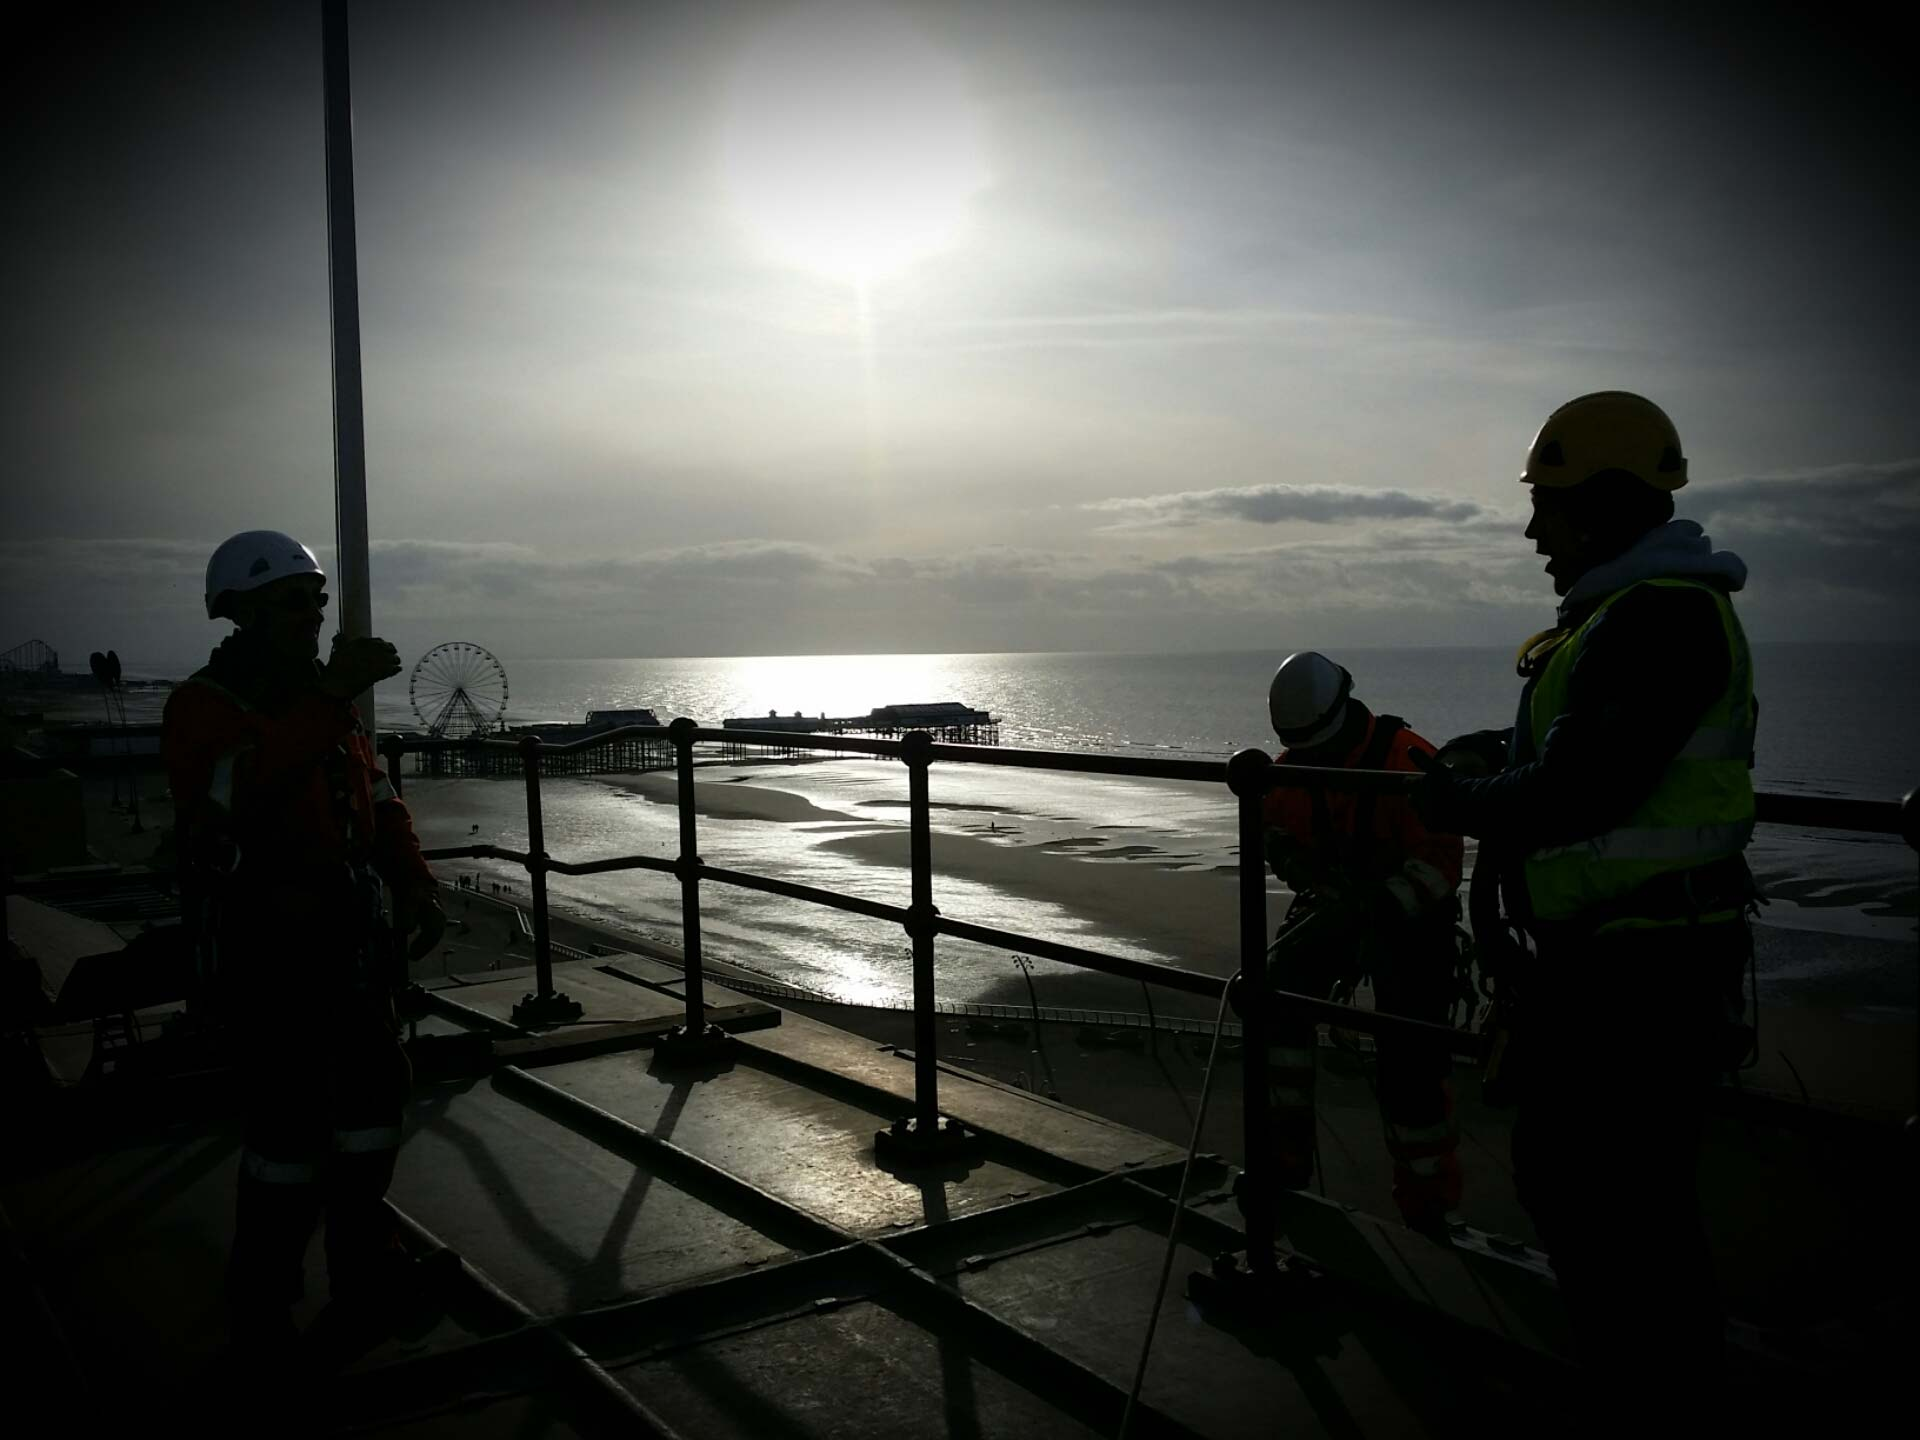 Three rope access technicians are stood on the building at blackpool tower setting up their rope access equipment to carry out rope access works